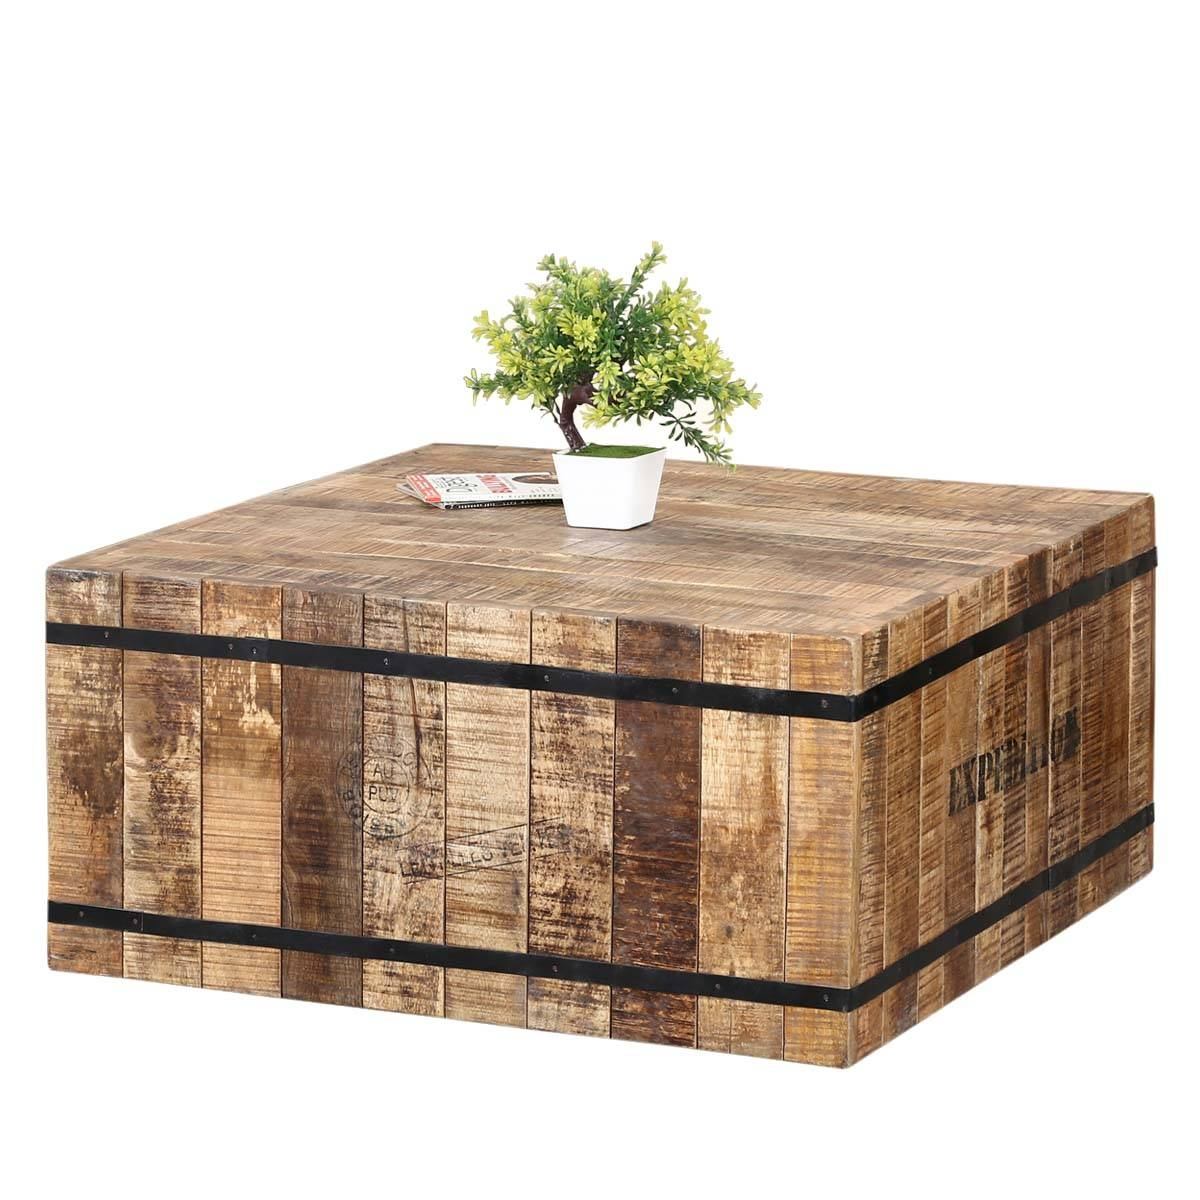 Rustic Mango Wood & Iron Square Box Style Coffee Table intended for Mango Wood Coffee Tables (Image 23 of 30)